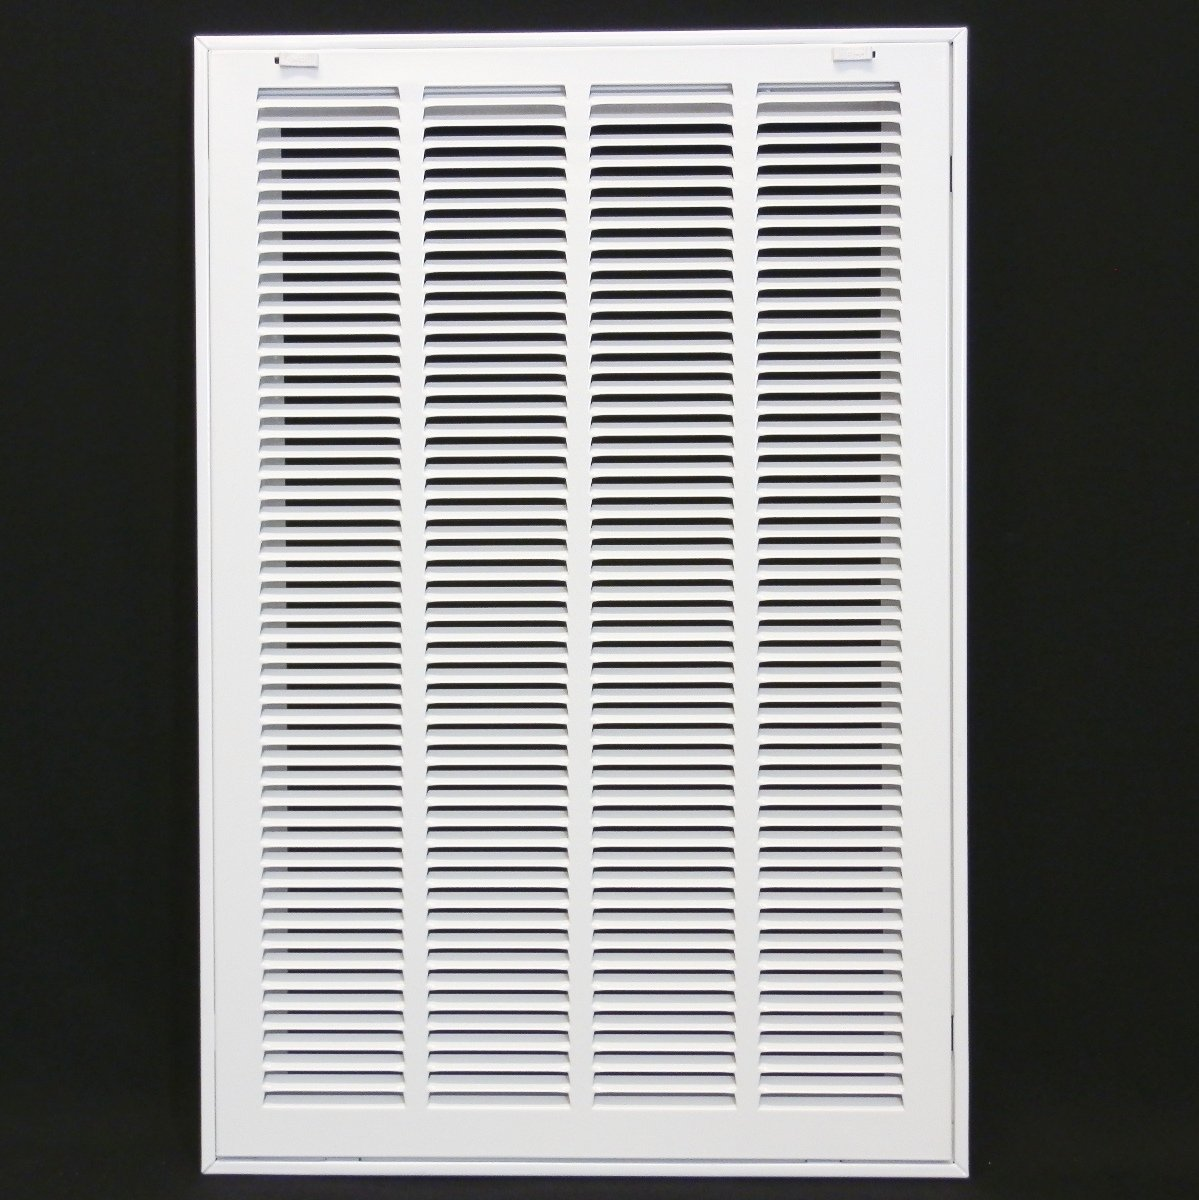 16'' X 25 Steel Return Air Filter Grille for 1'' Filter - Removable Face/Door - HVAC DUCT COVER - Flat Stamped Face - White [Outer Dimensions: 18.5''w X 27.5''h]